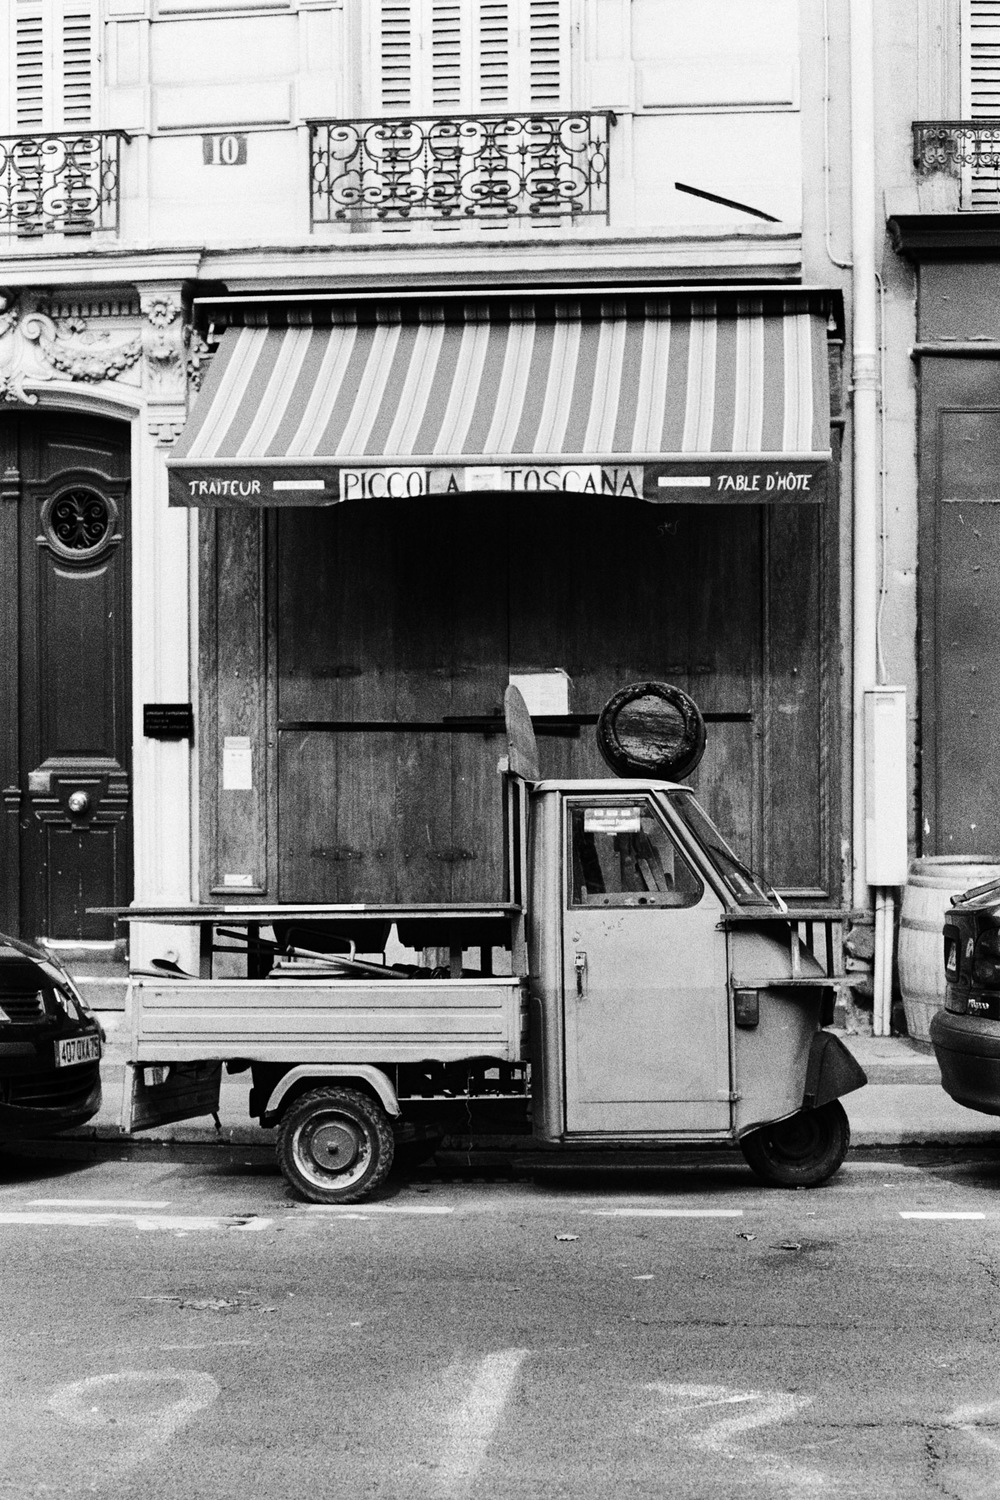 Paris (10) Little Truck.jpg